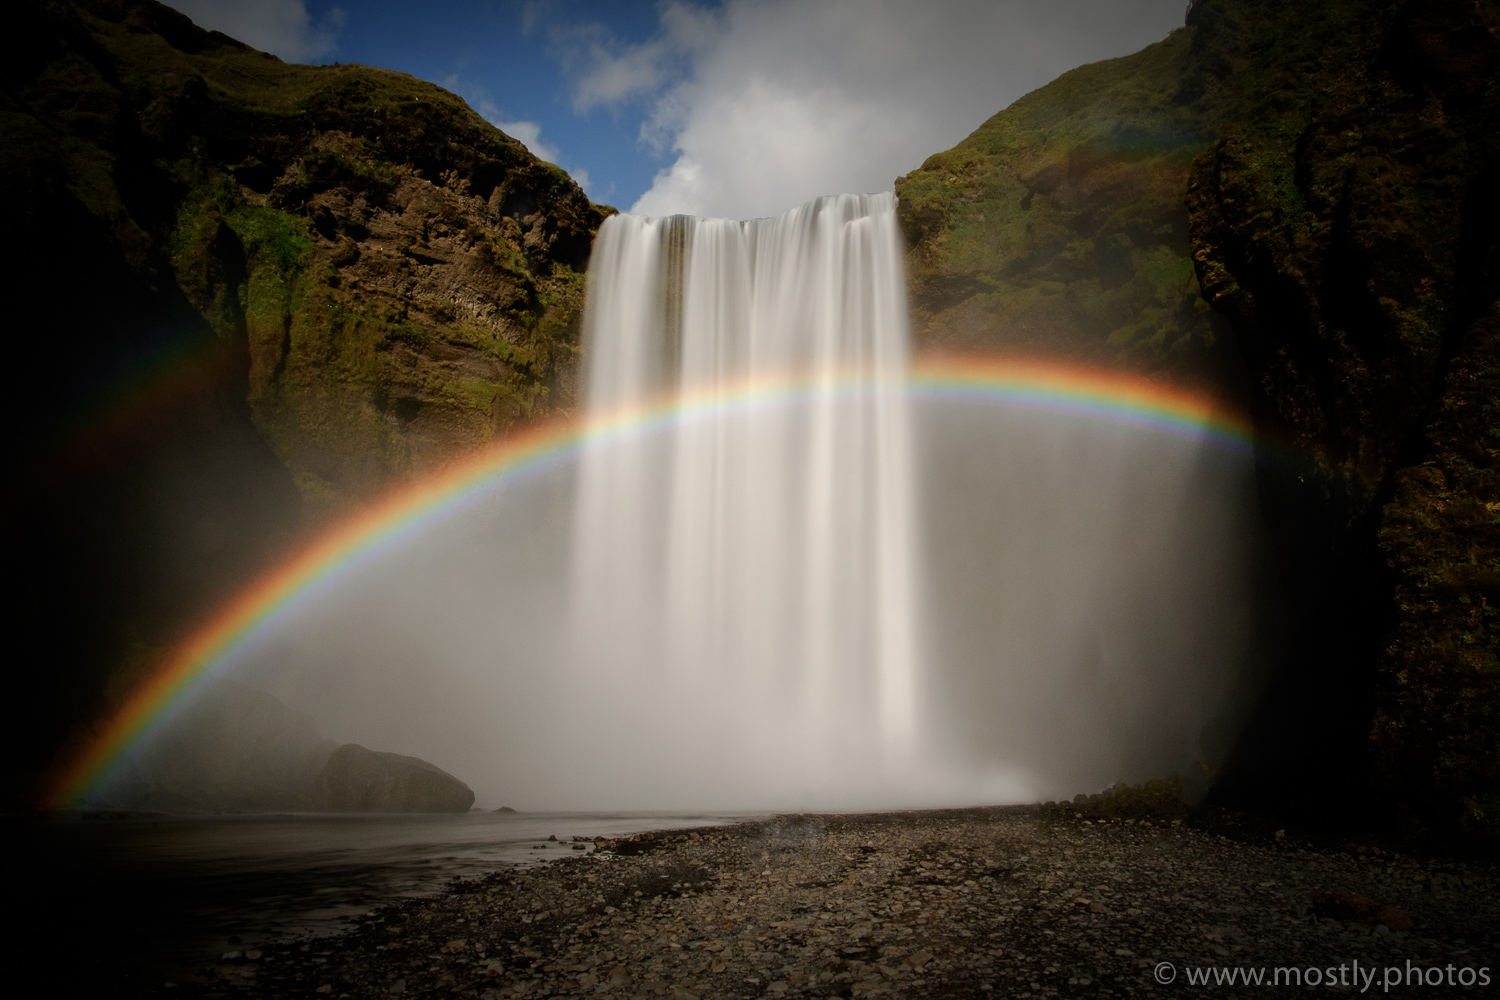 Fuji X-T1 - Icelands waterfalls don't get more famous than the beautiful Skogafoss